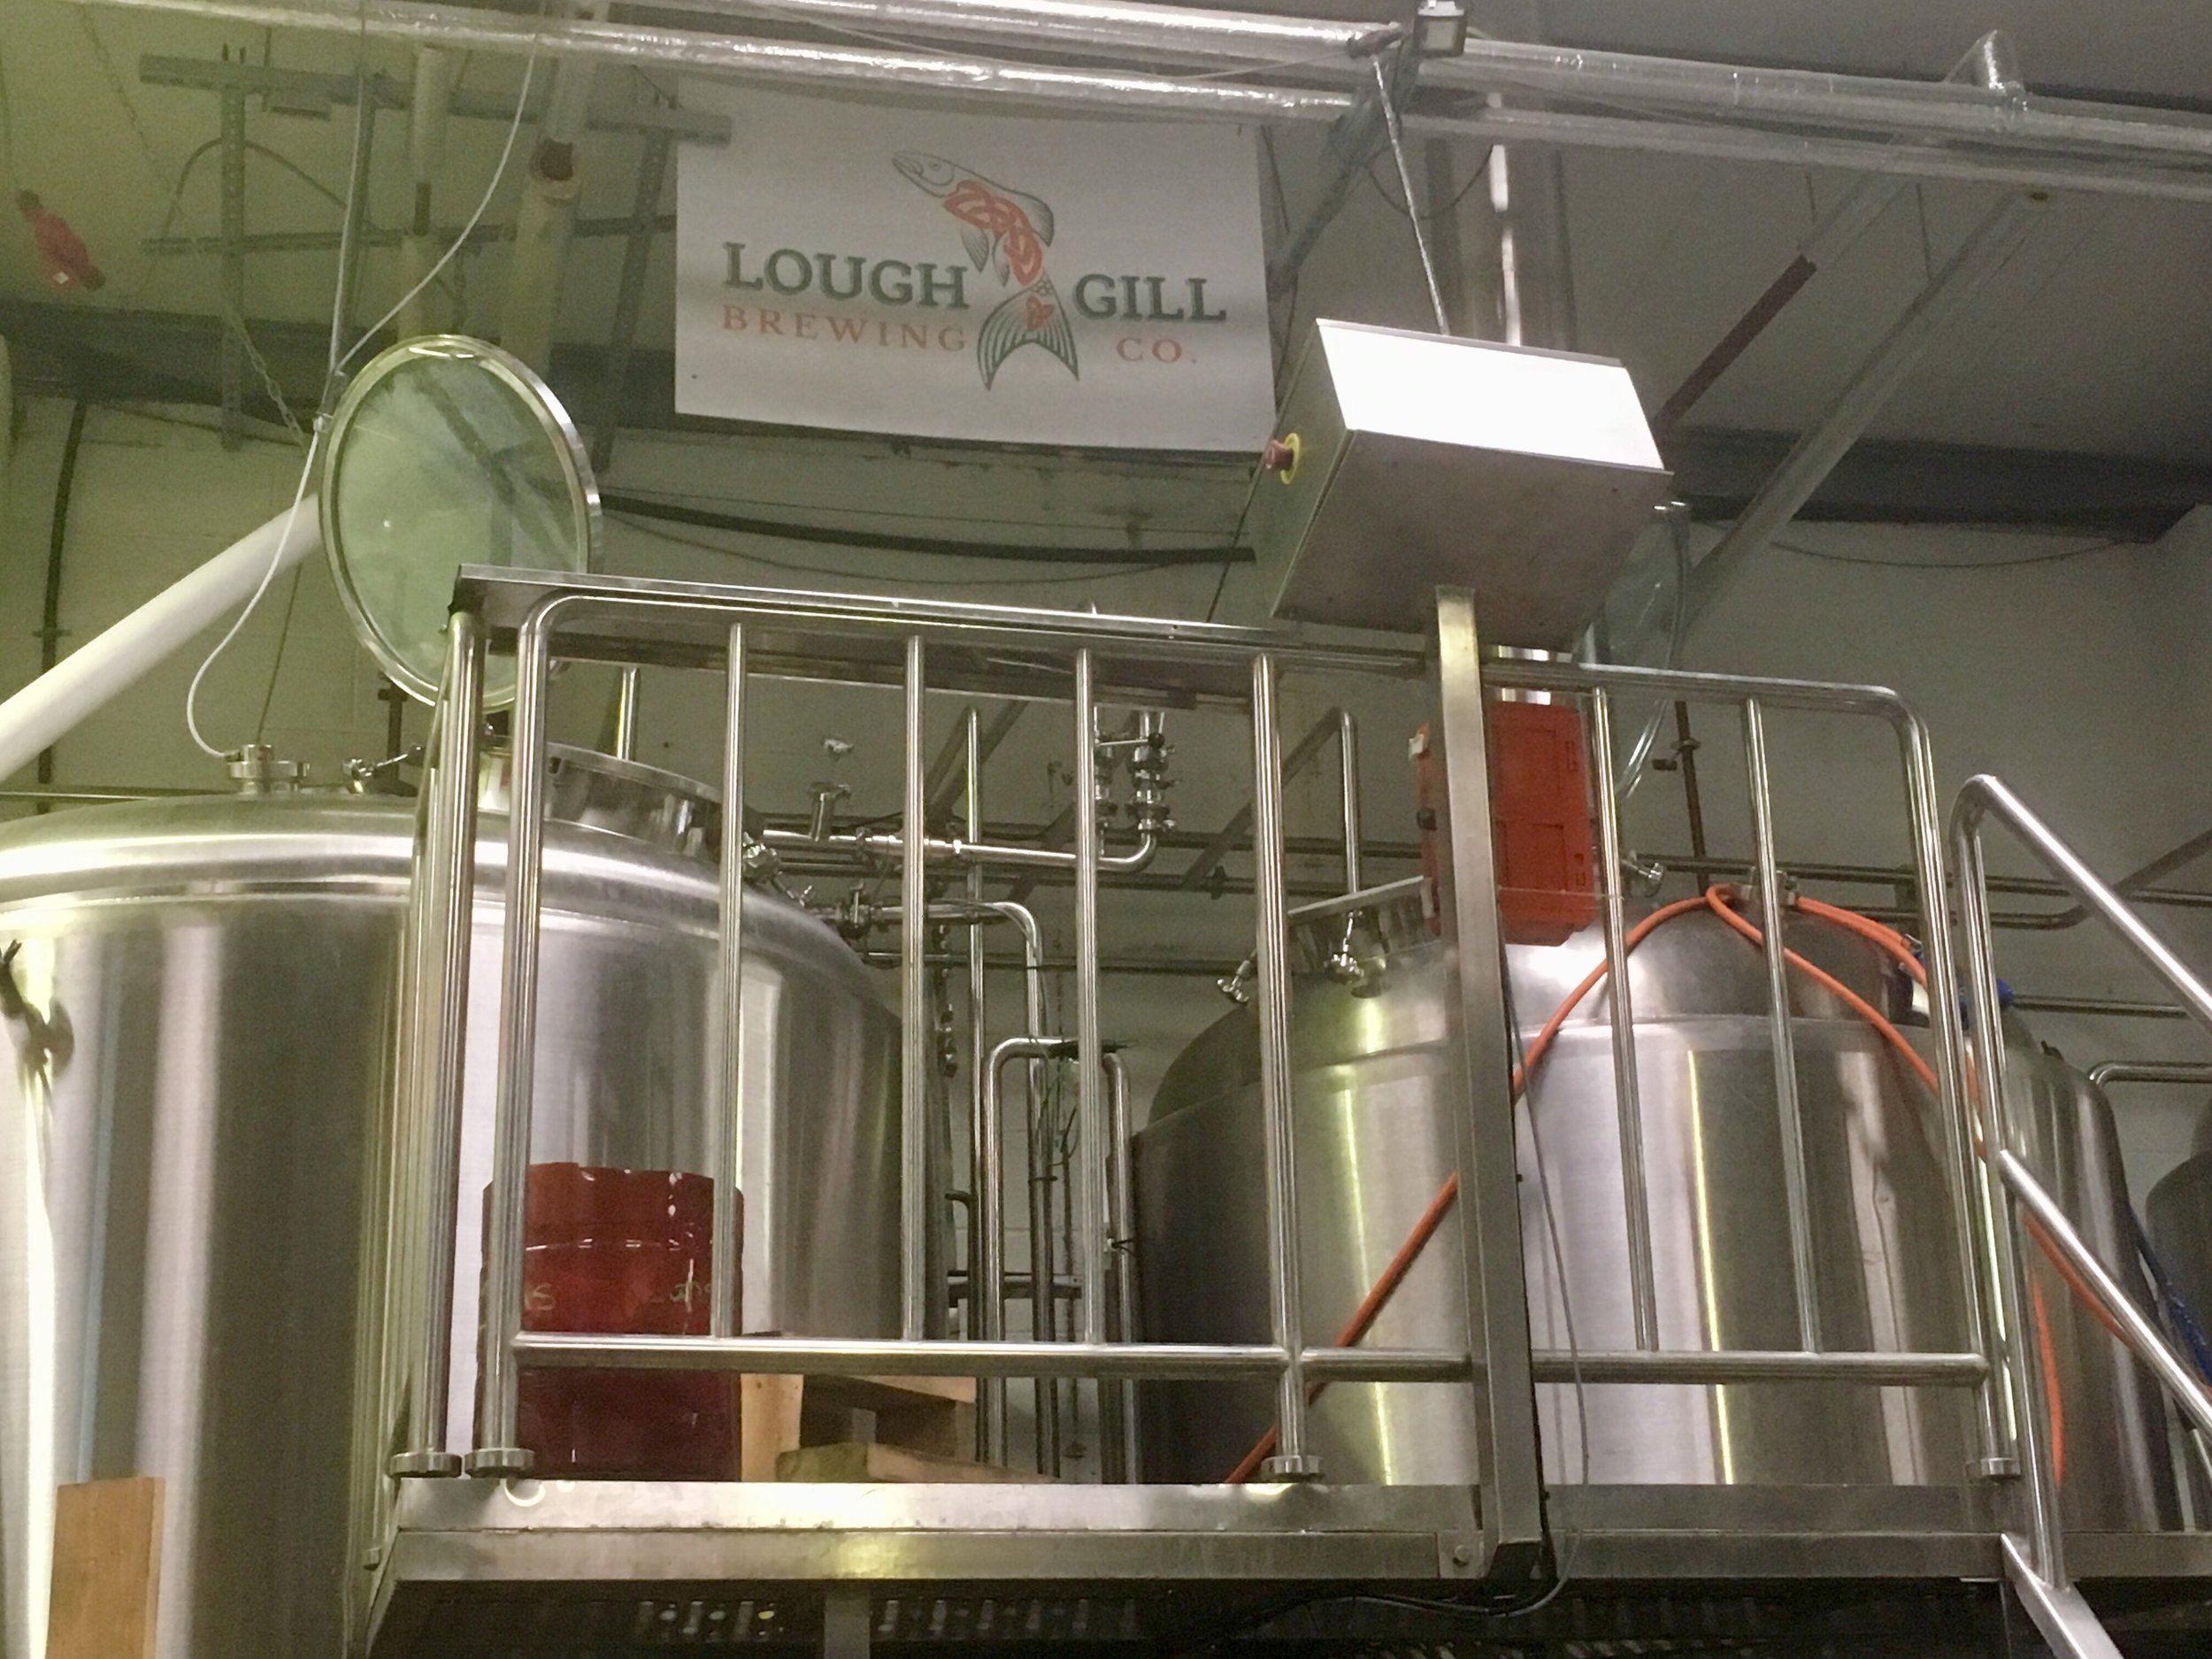 lough gill brewery.jpg